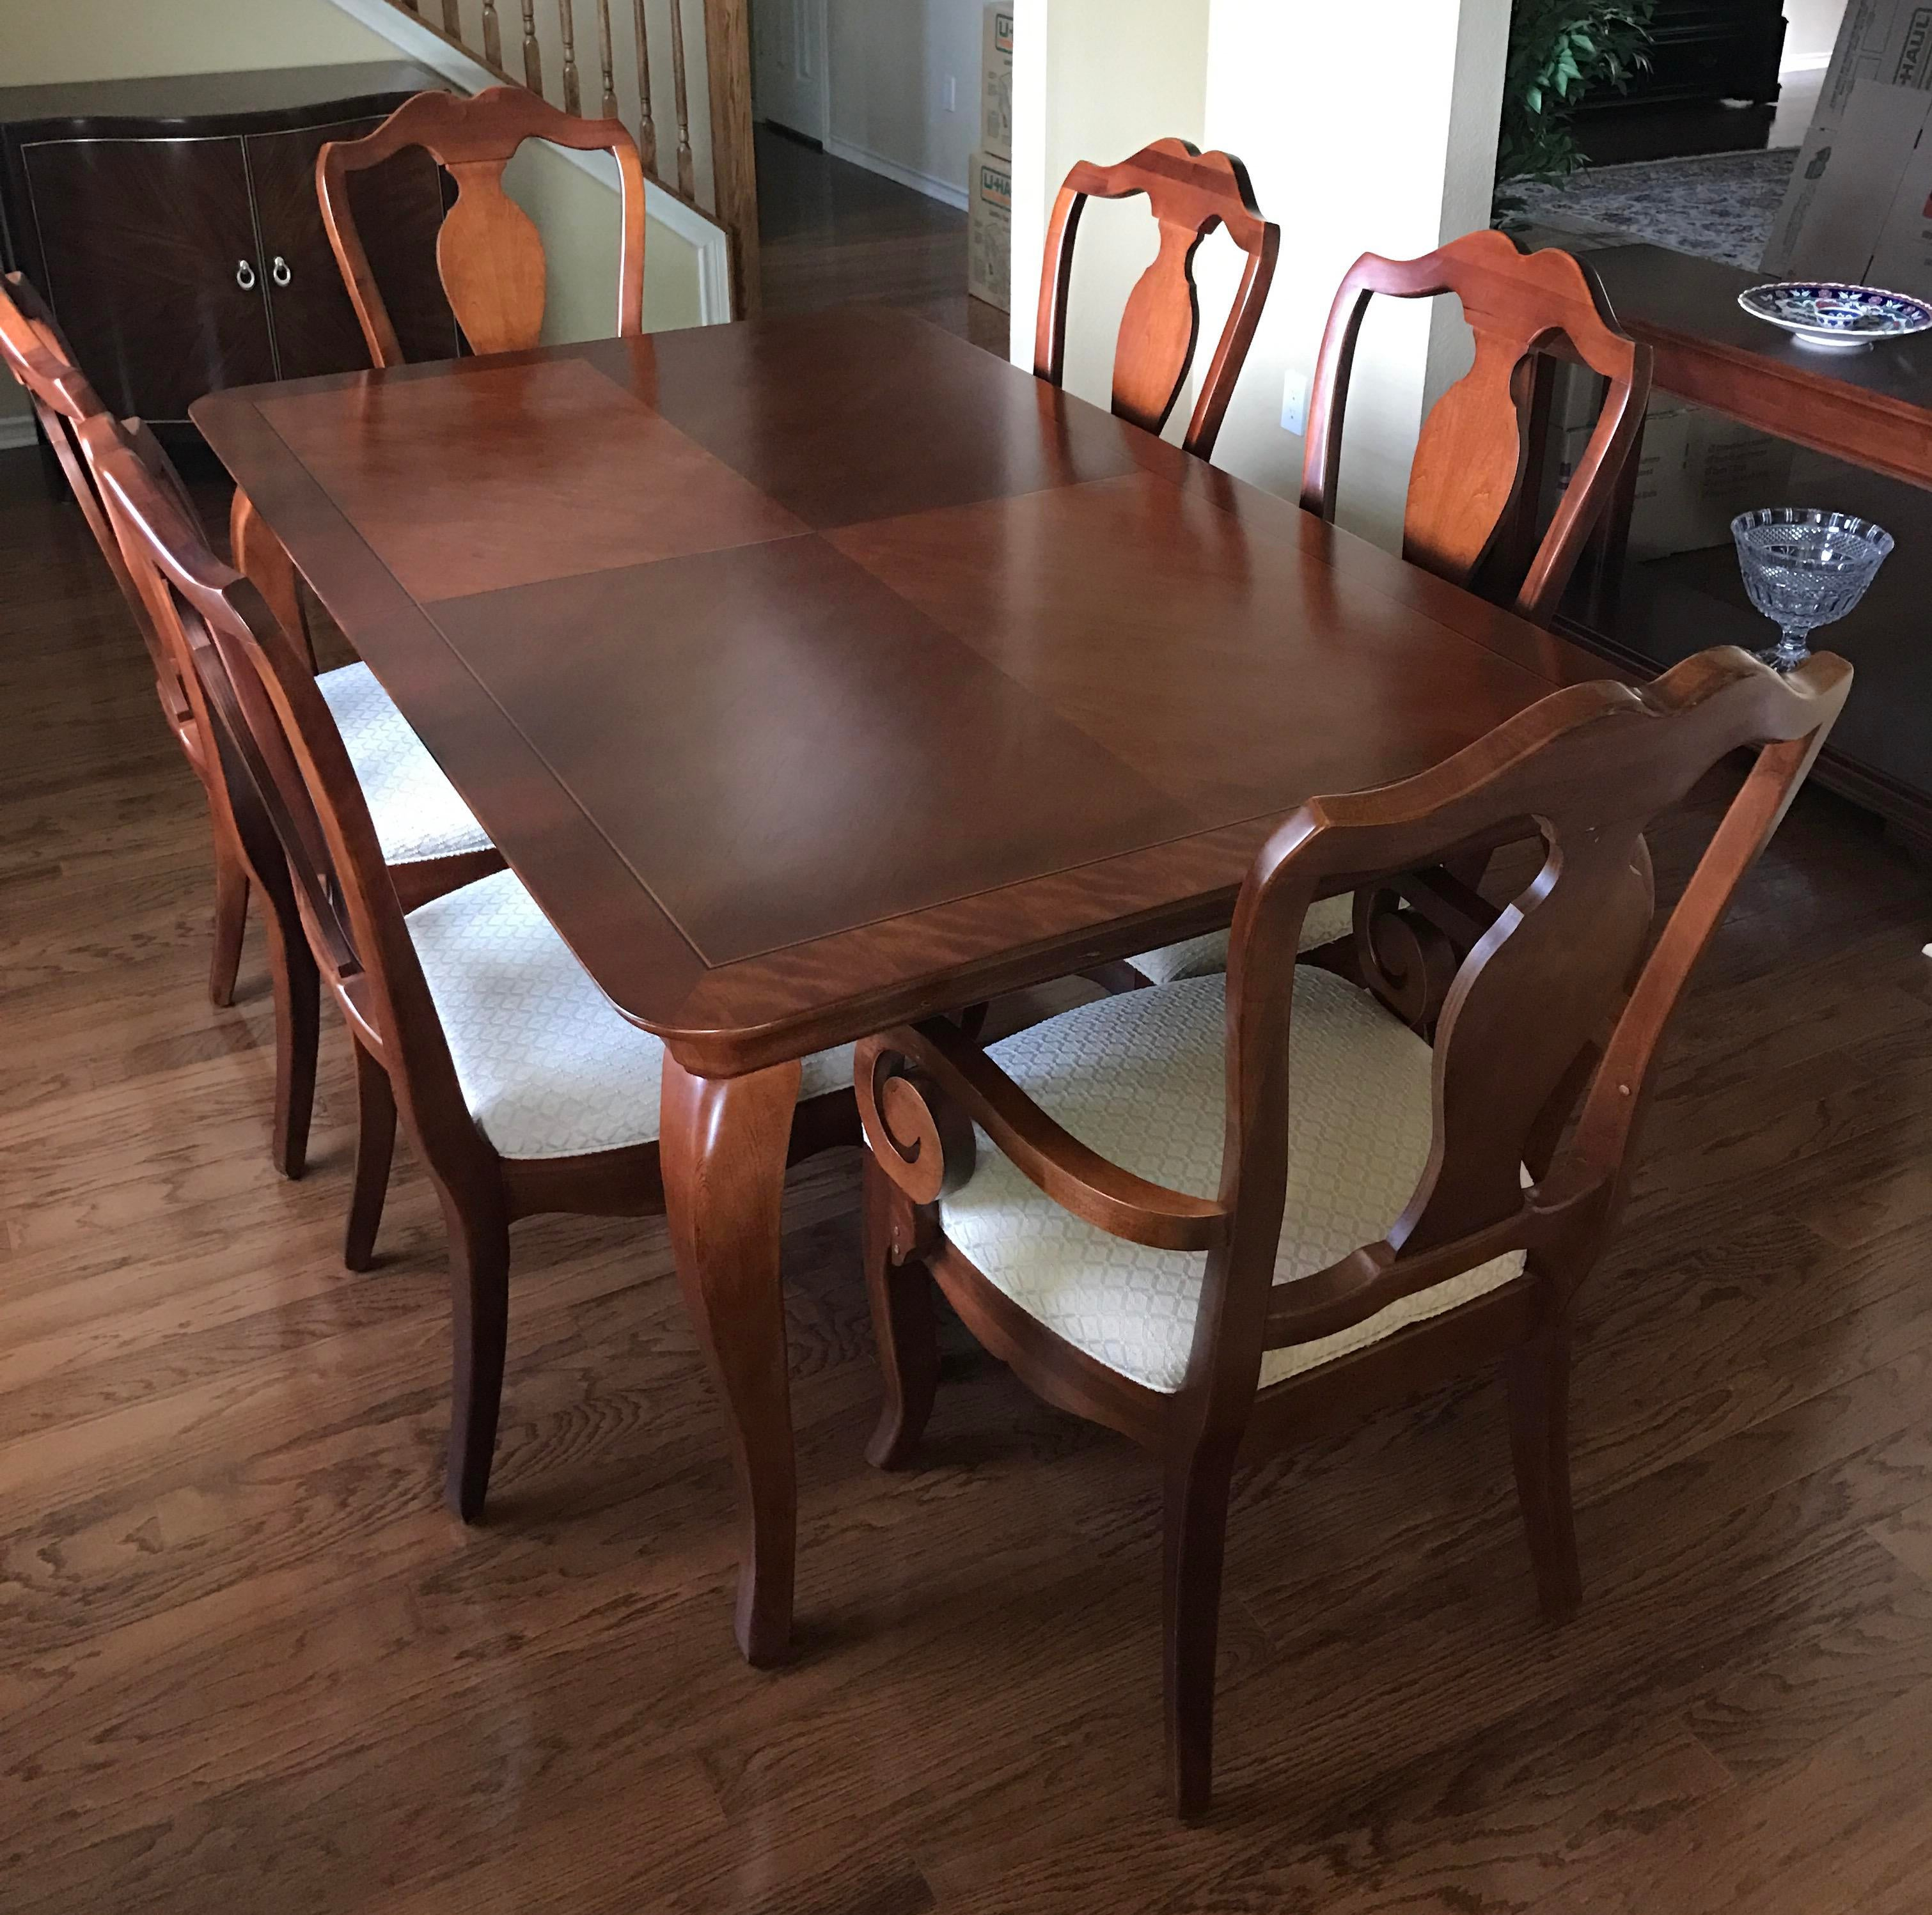 Chairs-Chaises-Hero Thomasville Dining Room Sets